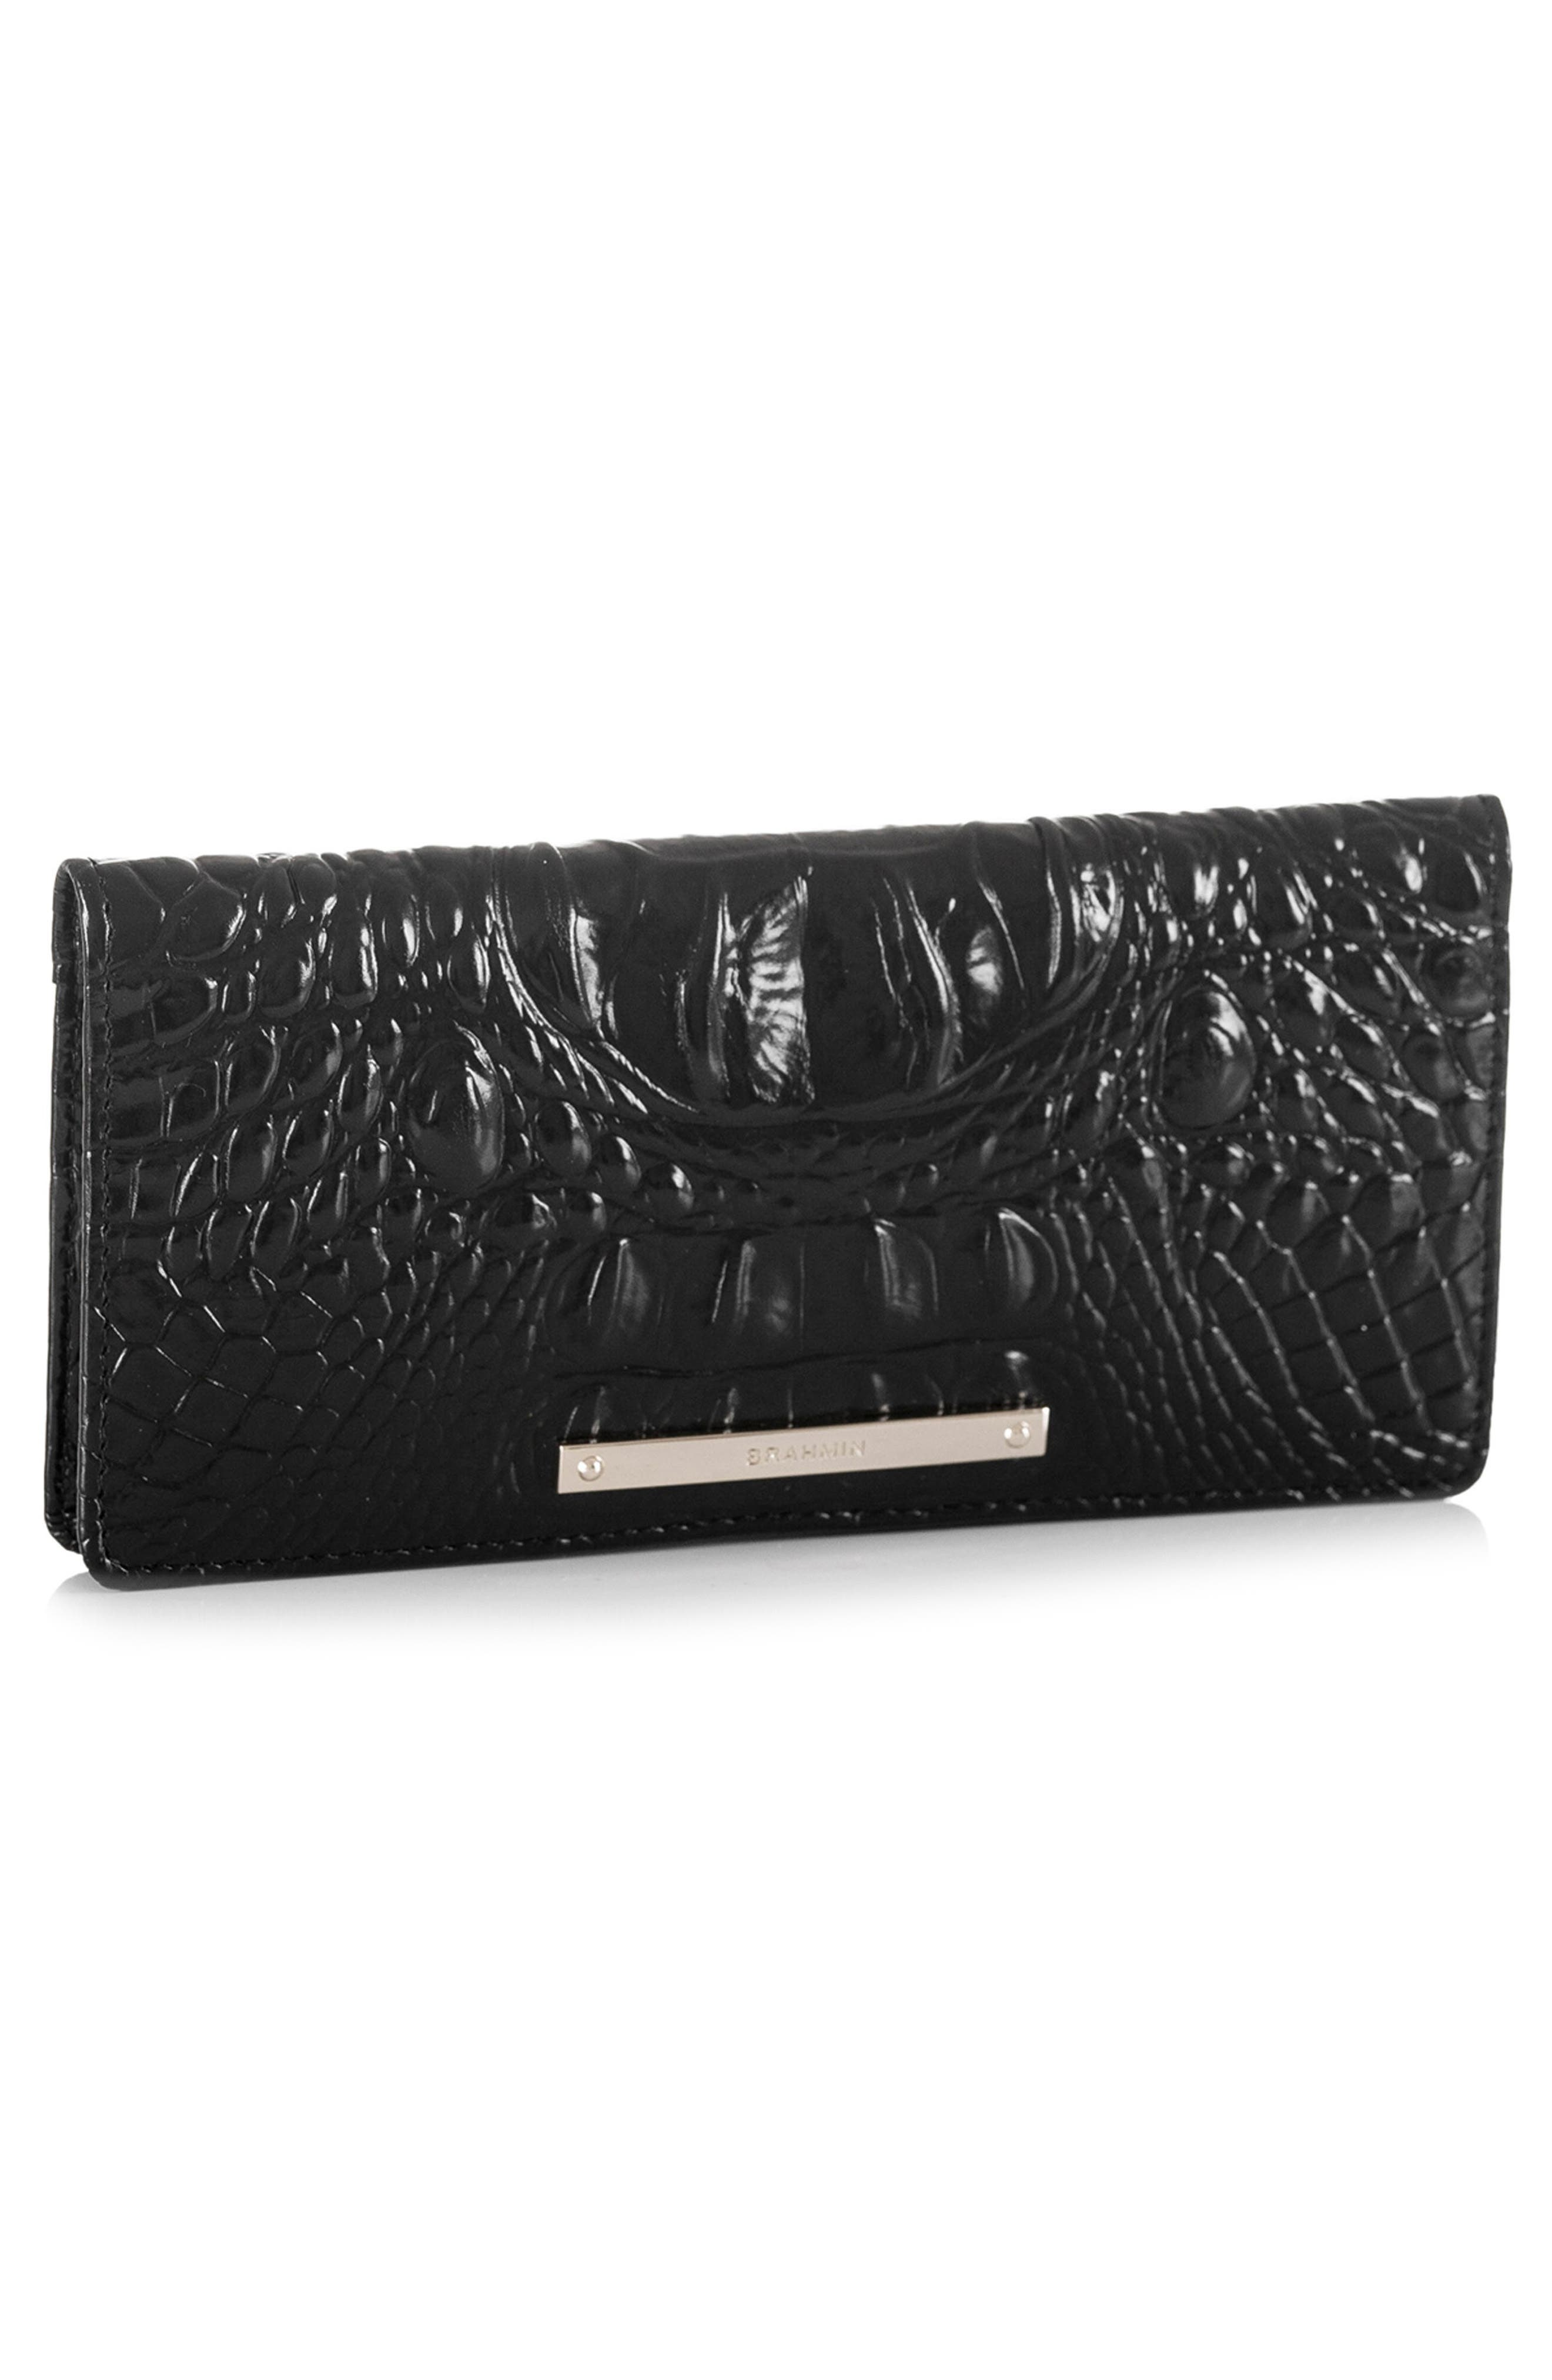 'Ady' Croc Embossed Continental Wallet,                             Alternate thumbnail 4, color,                             BLACK